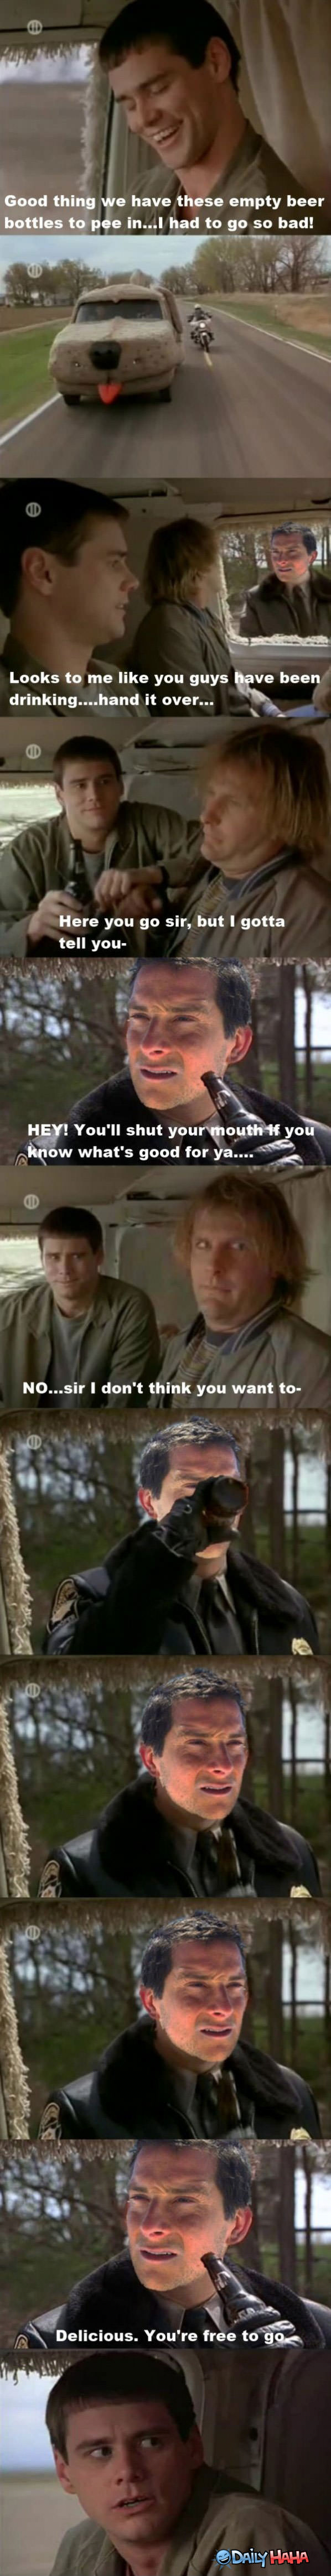 Dumb and Dumber funny picture